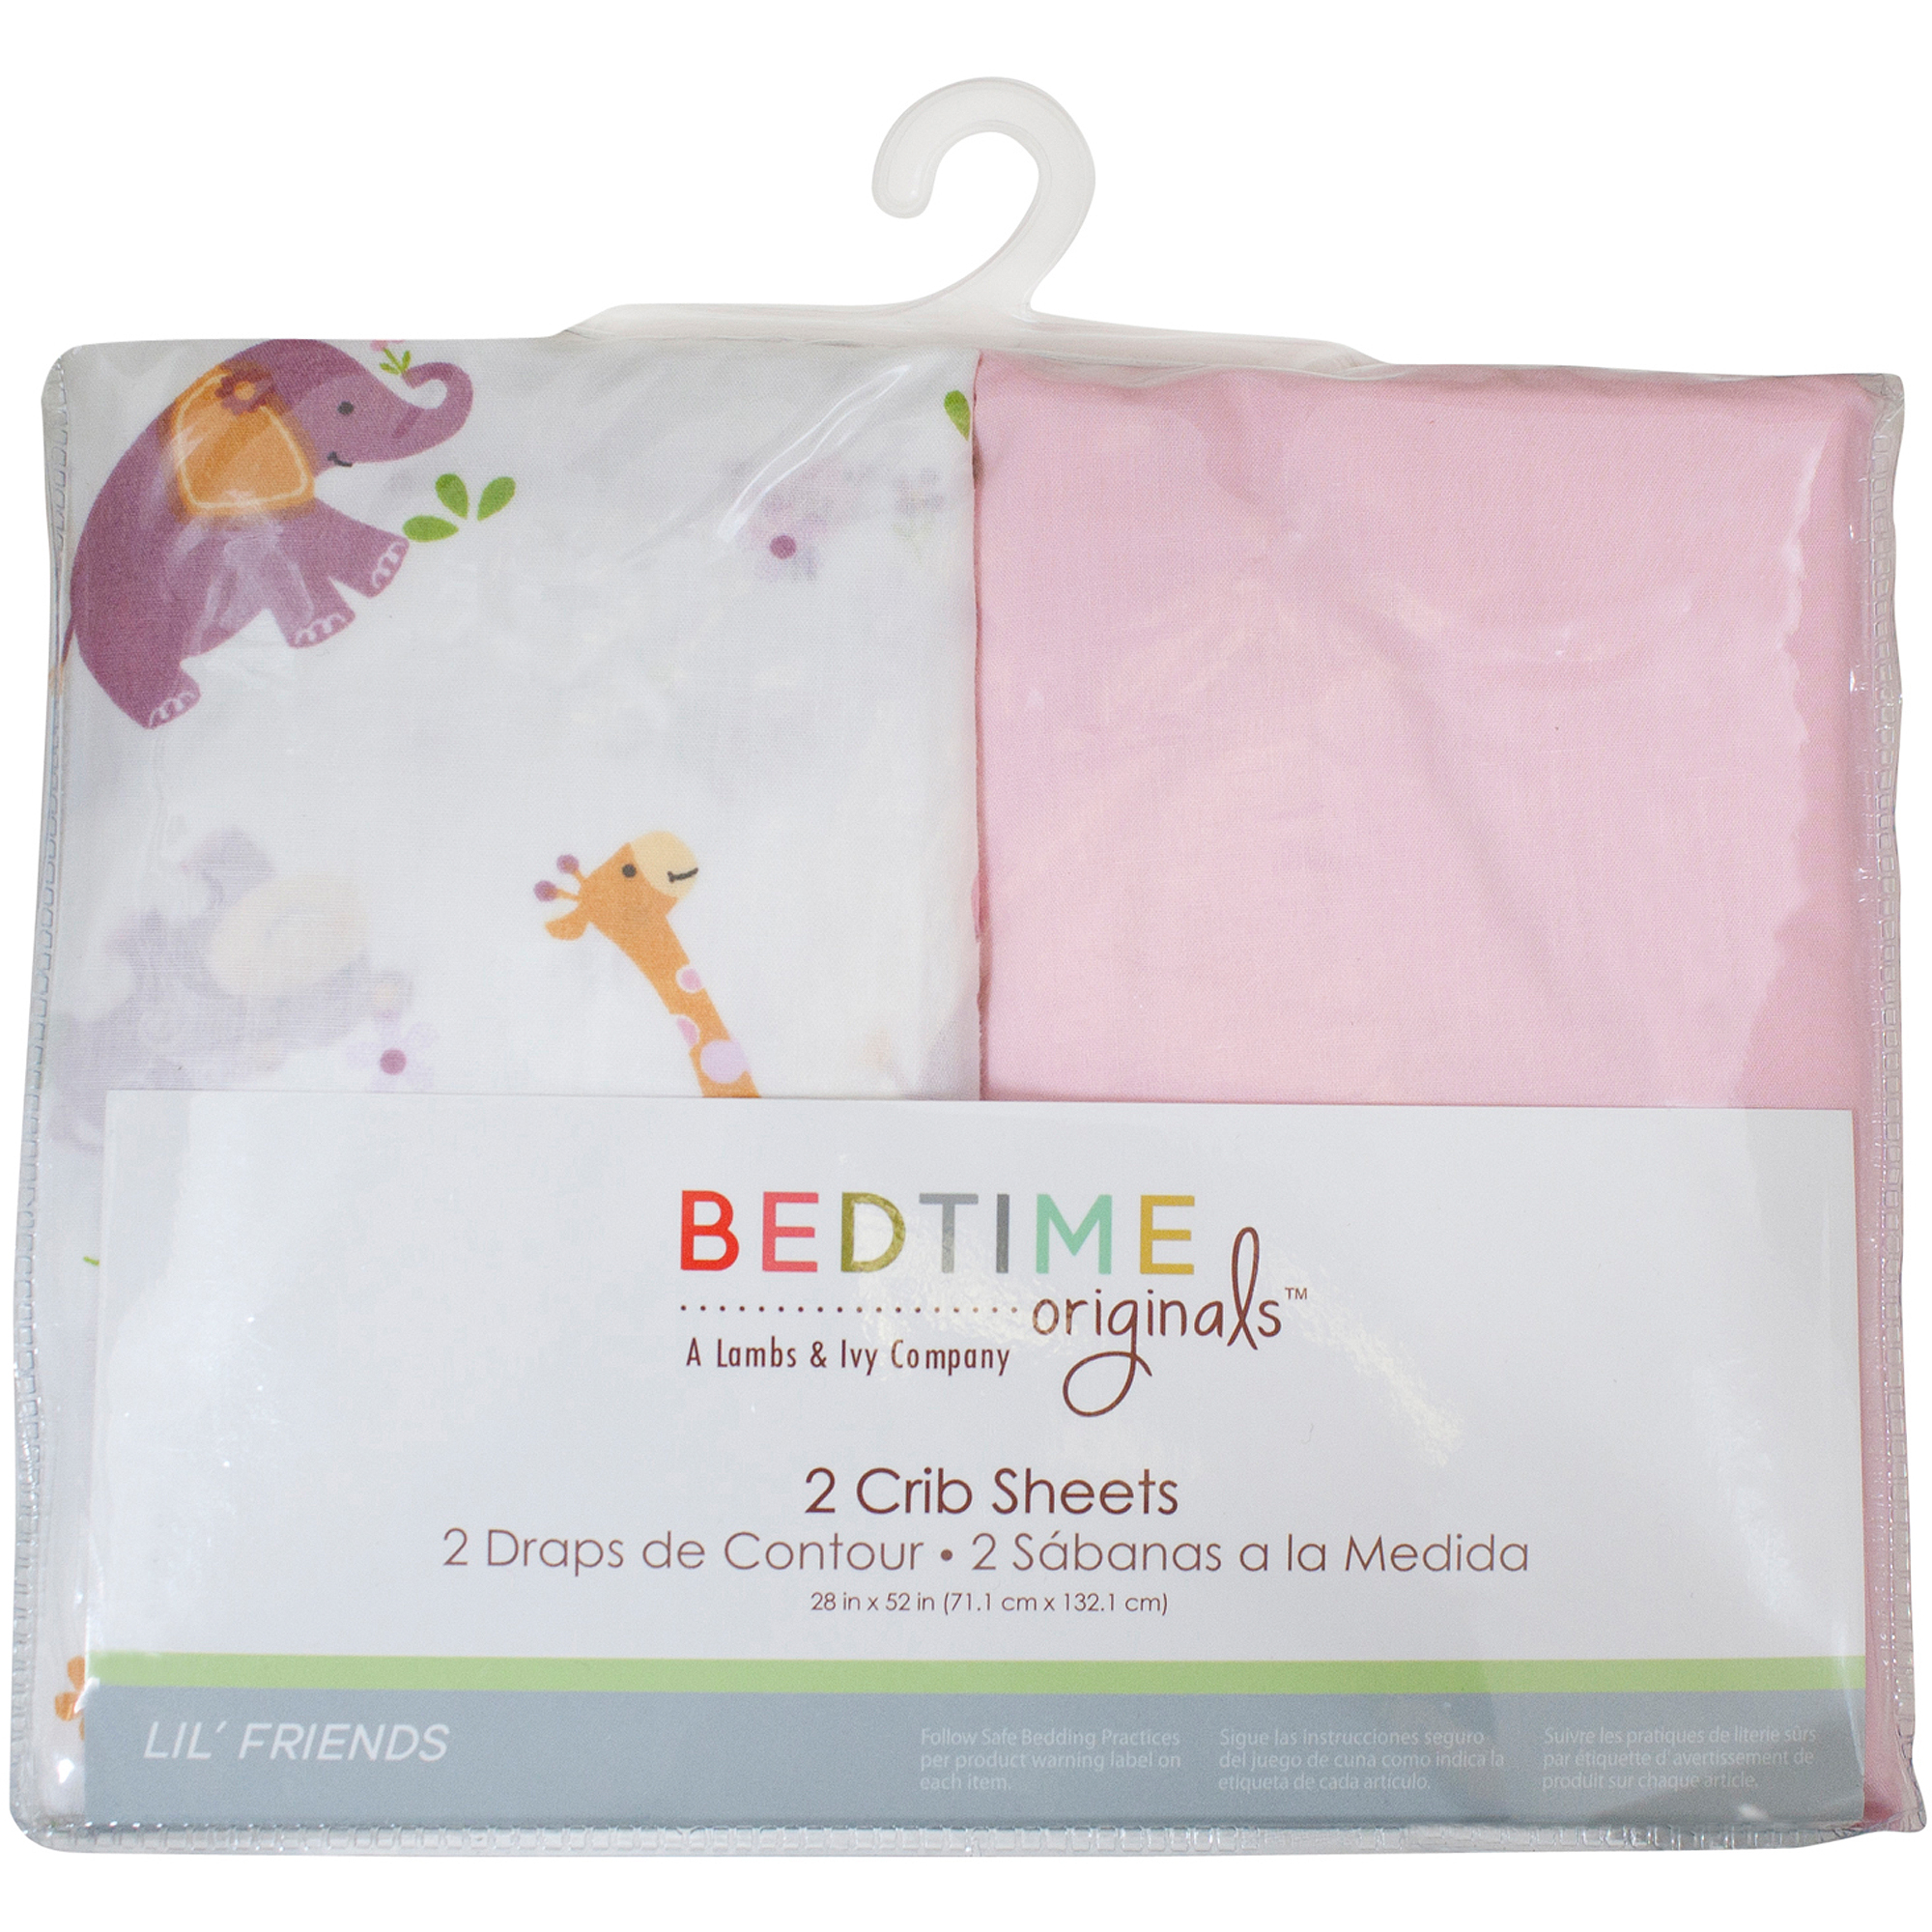 Bedtime Originals Lil' Friends Set of 2 Fitted Crib Sheets